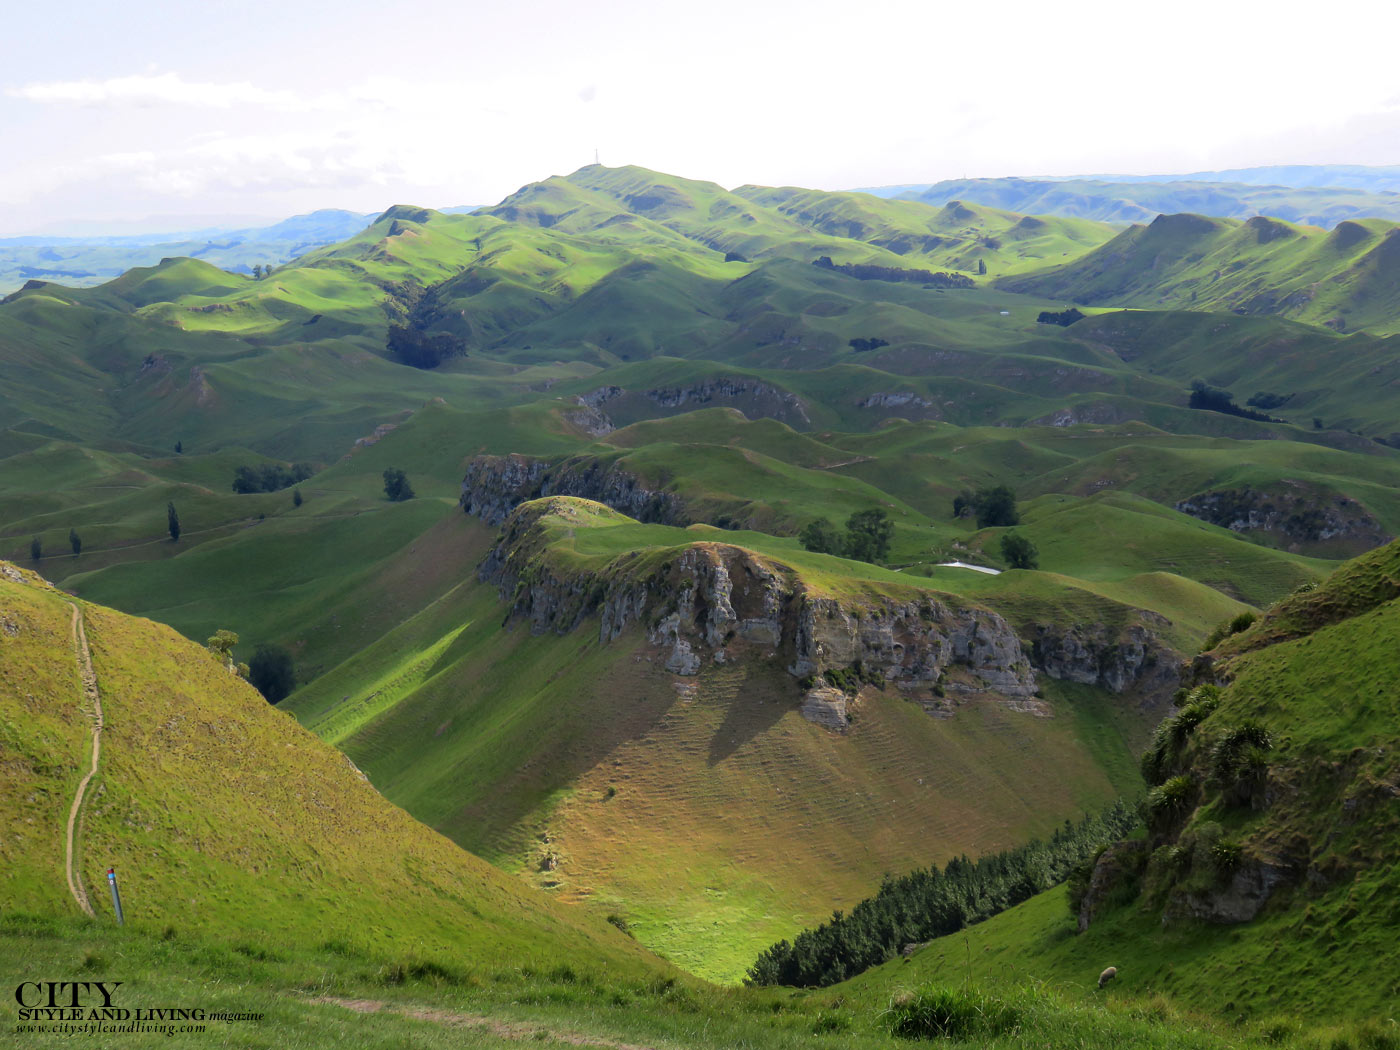 City Style and Living Magazine Te Mata Mountain New Zealand panorama landscape